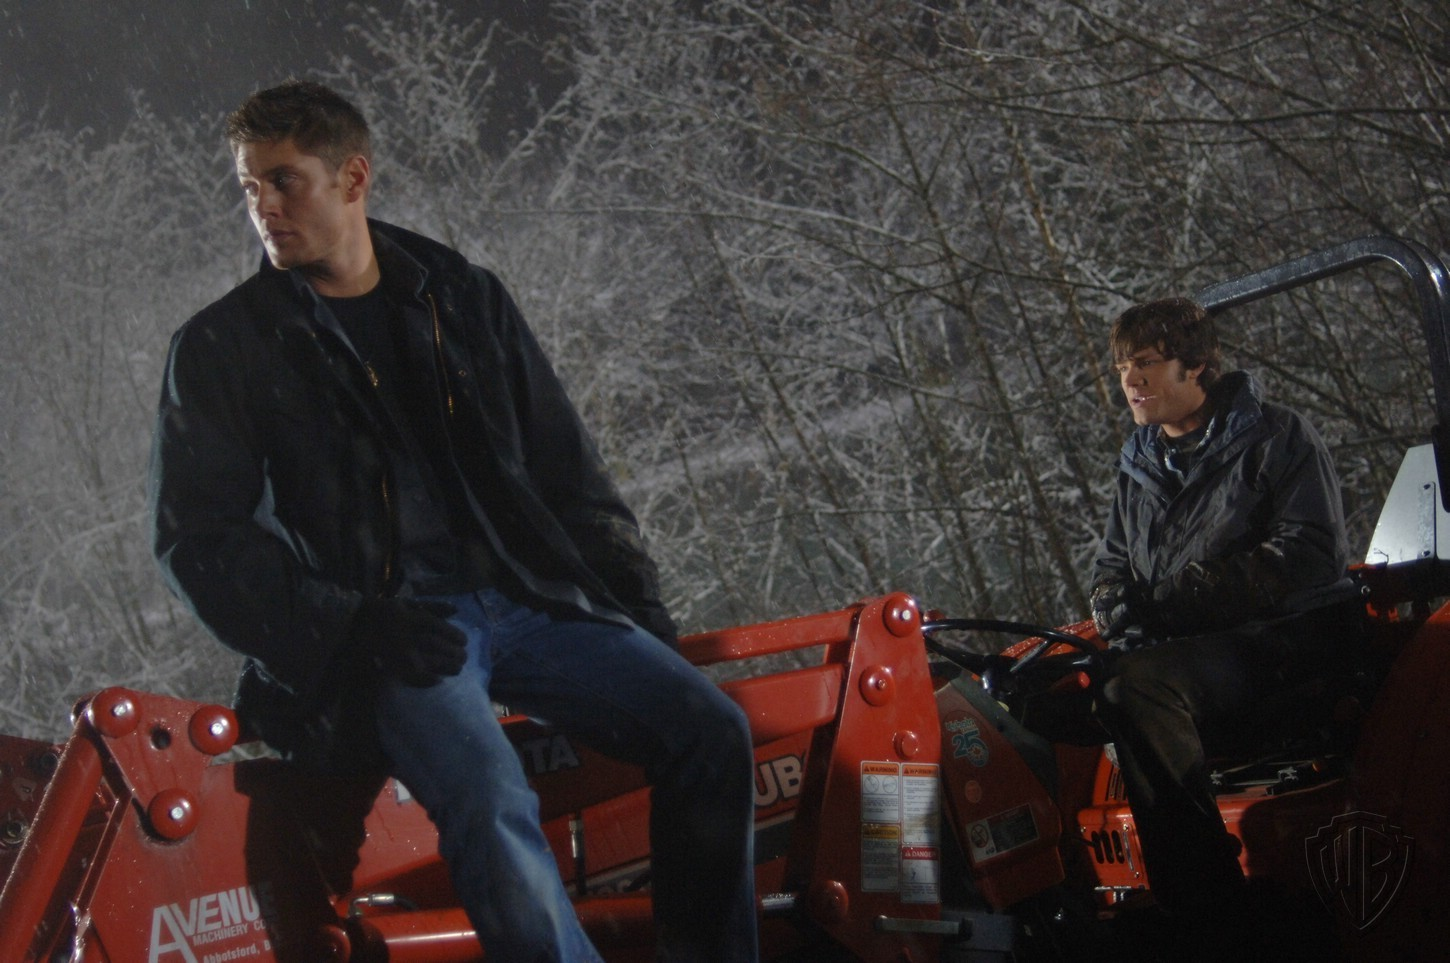 http://images1.fanpop.com/images/photos/2000000/behind-the-scenes-of-Route-666-supernatural-2047282-1450-963.jpg